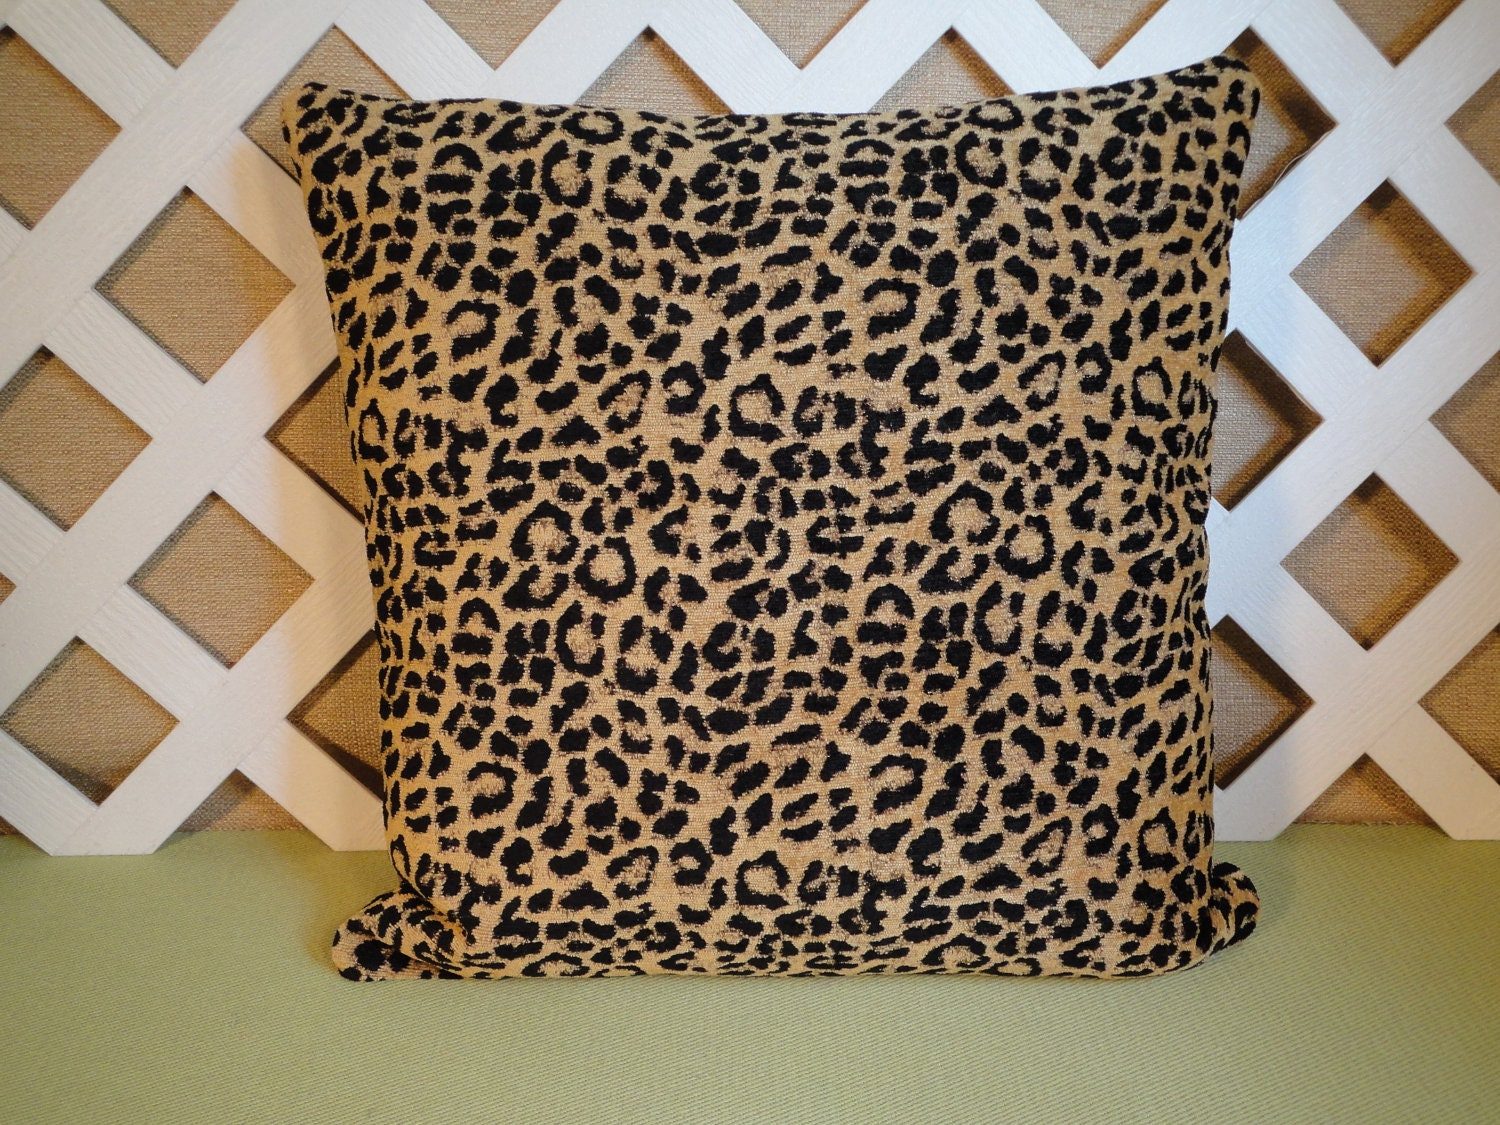 Leopard Print Pillow Cover/ Leopard Pillow/ Black and Tan